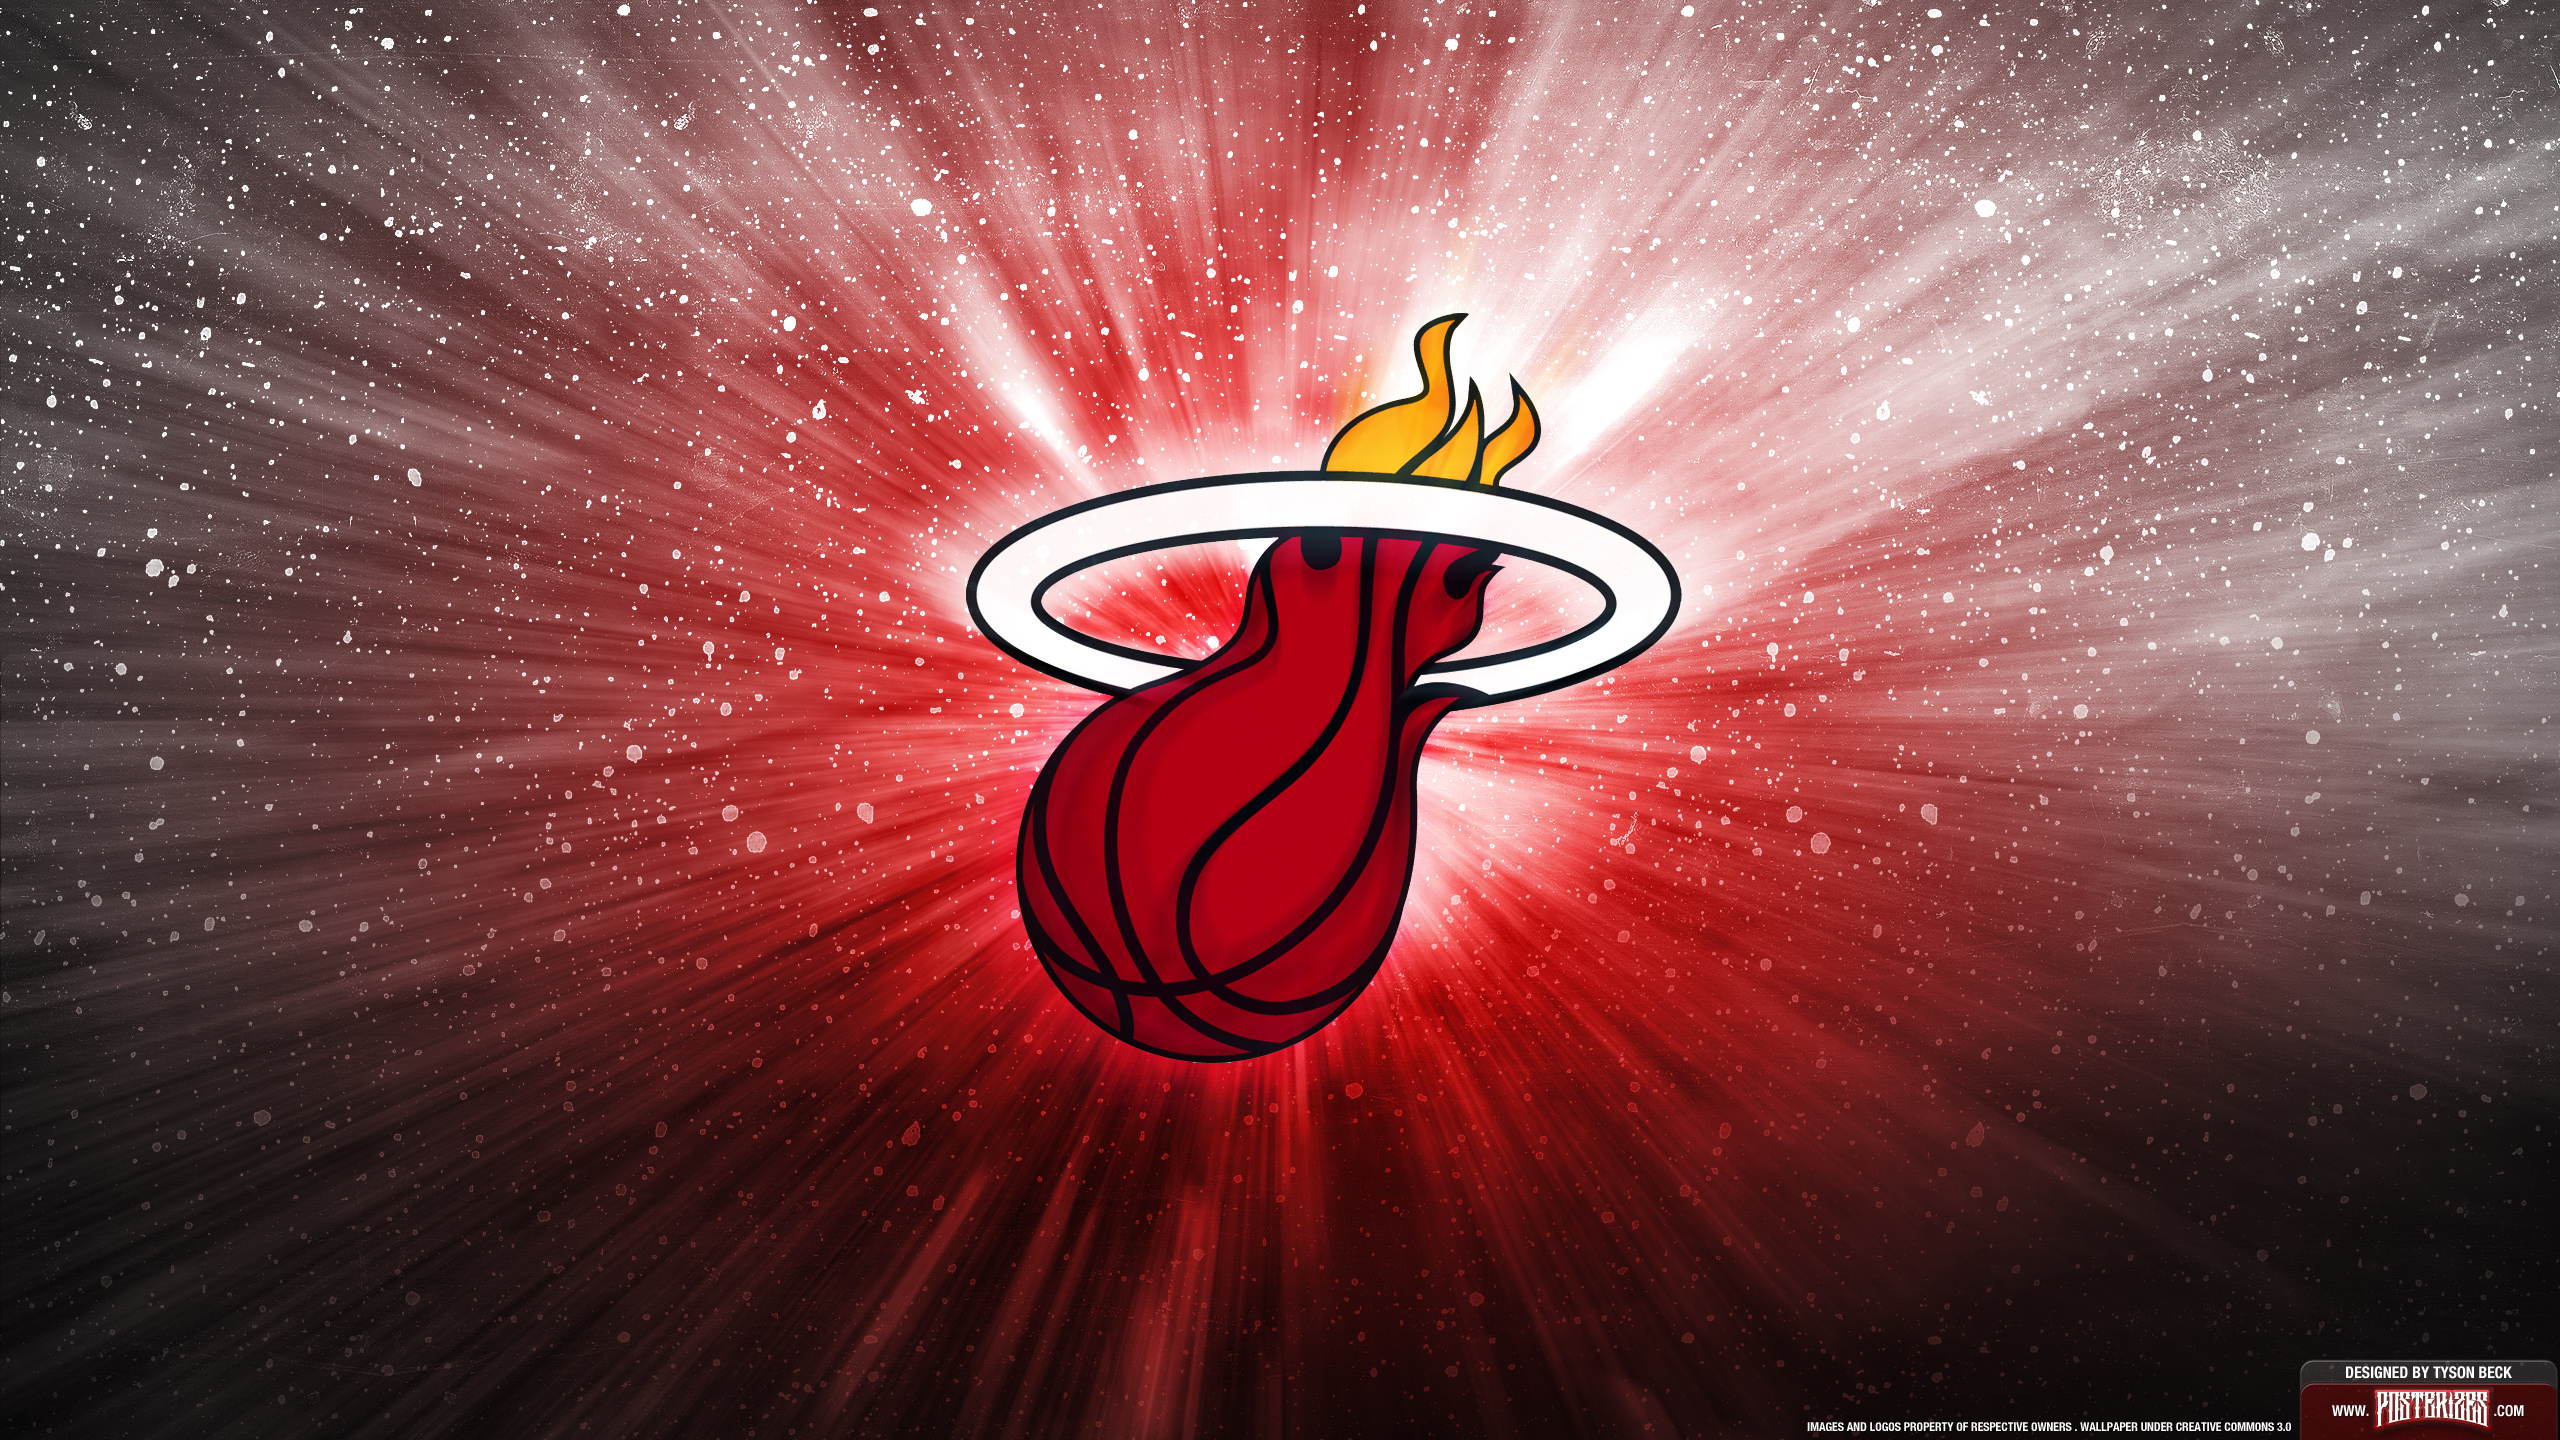 Miami Heat Wallpaper PC Laptop 36 Miami Heat Pictures in FHD 2560x1440